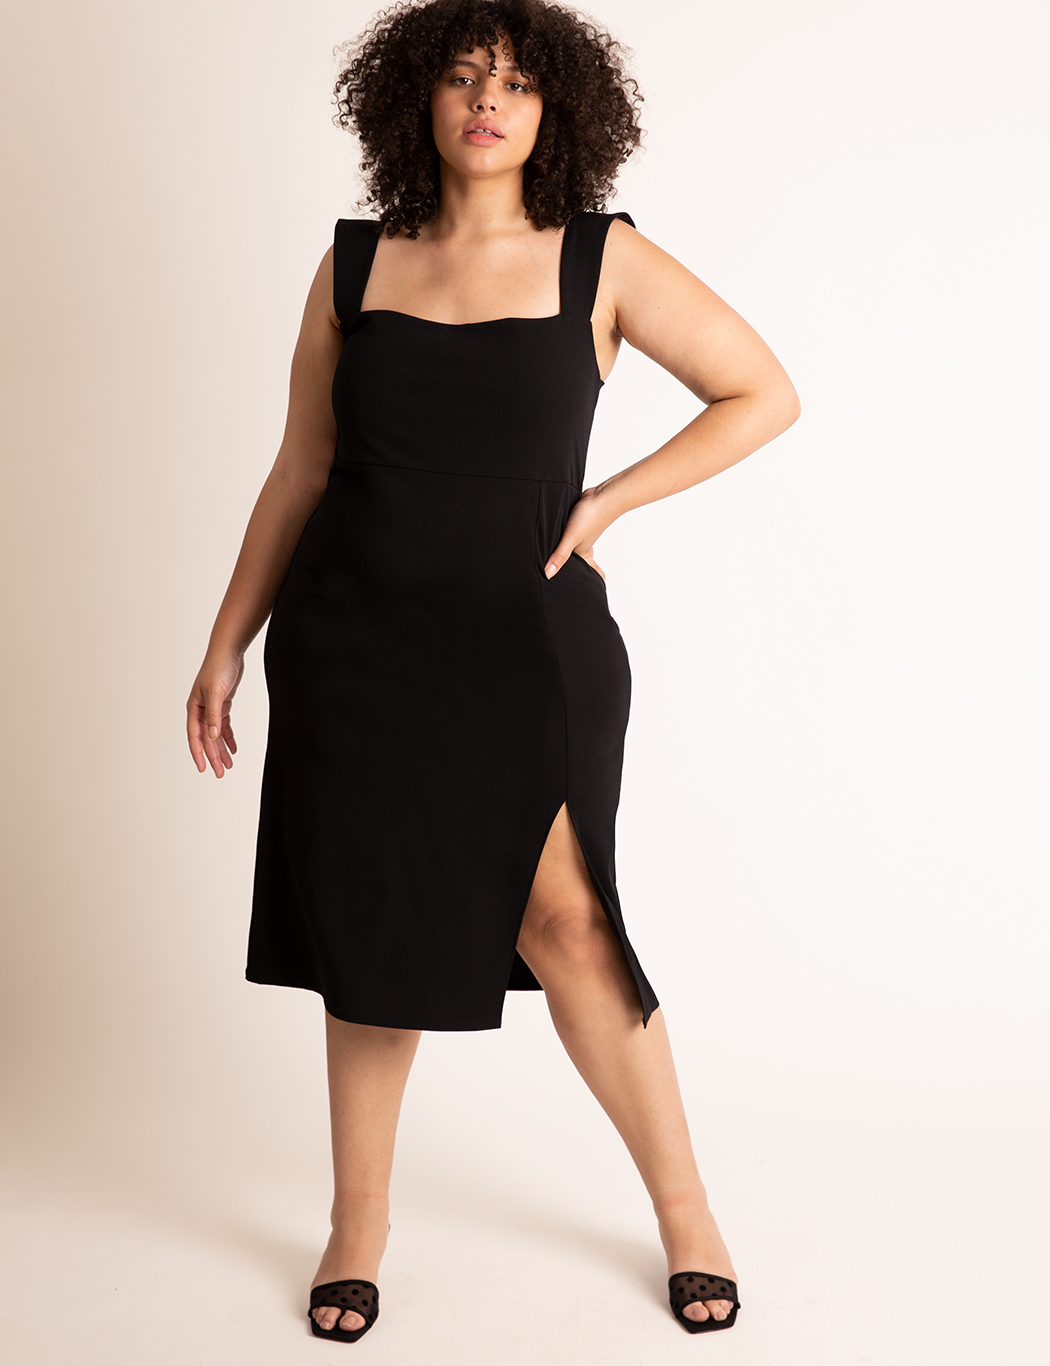 Sleeveless Dress With Slit 19